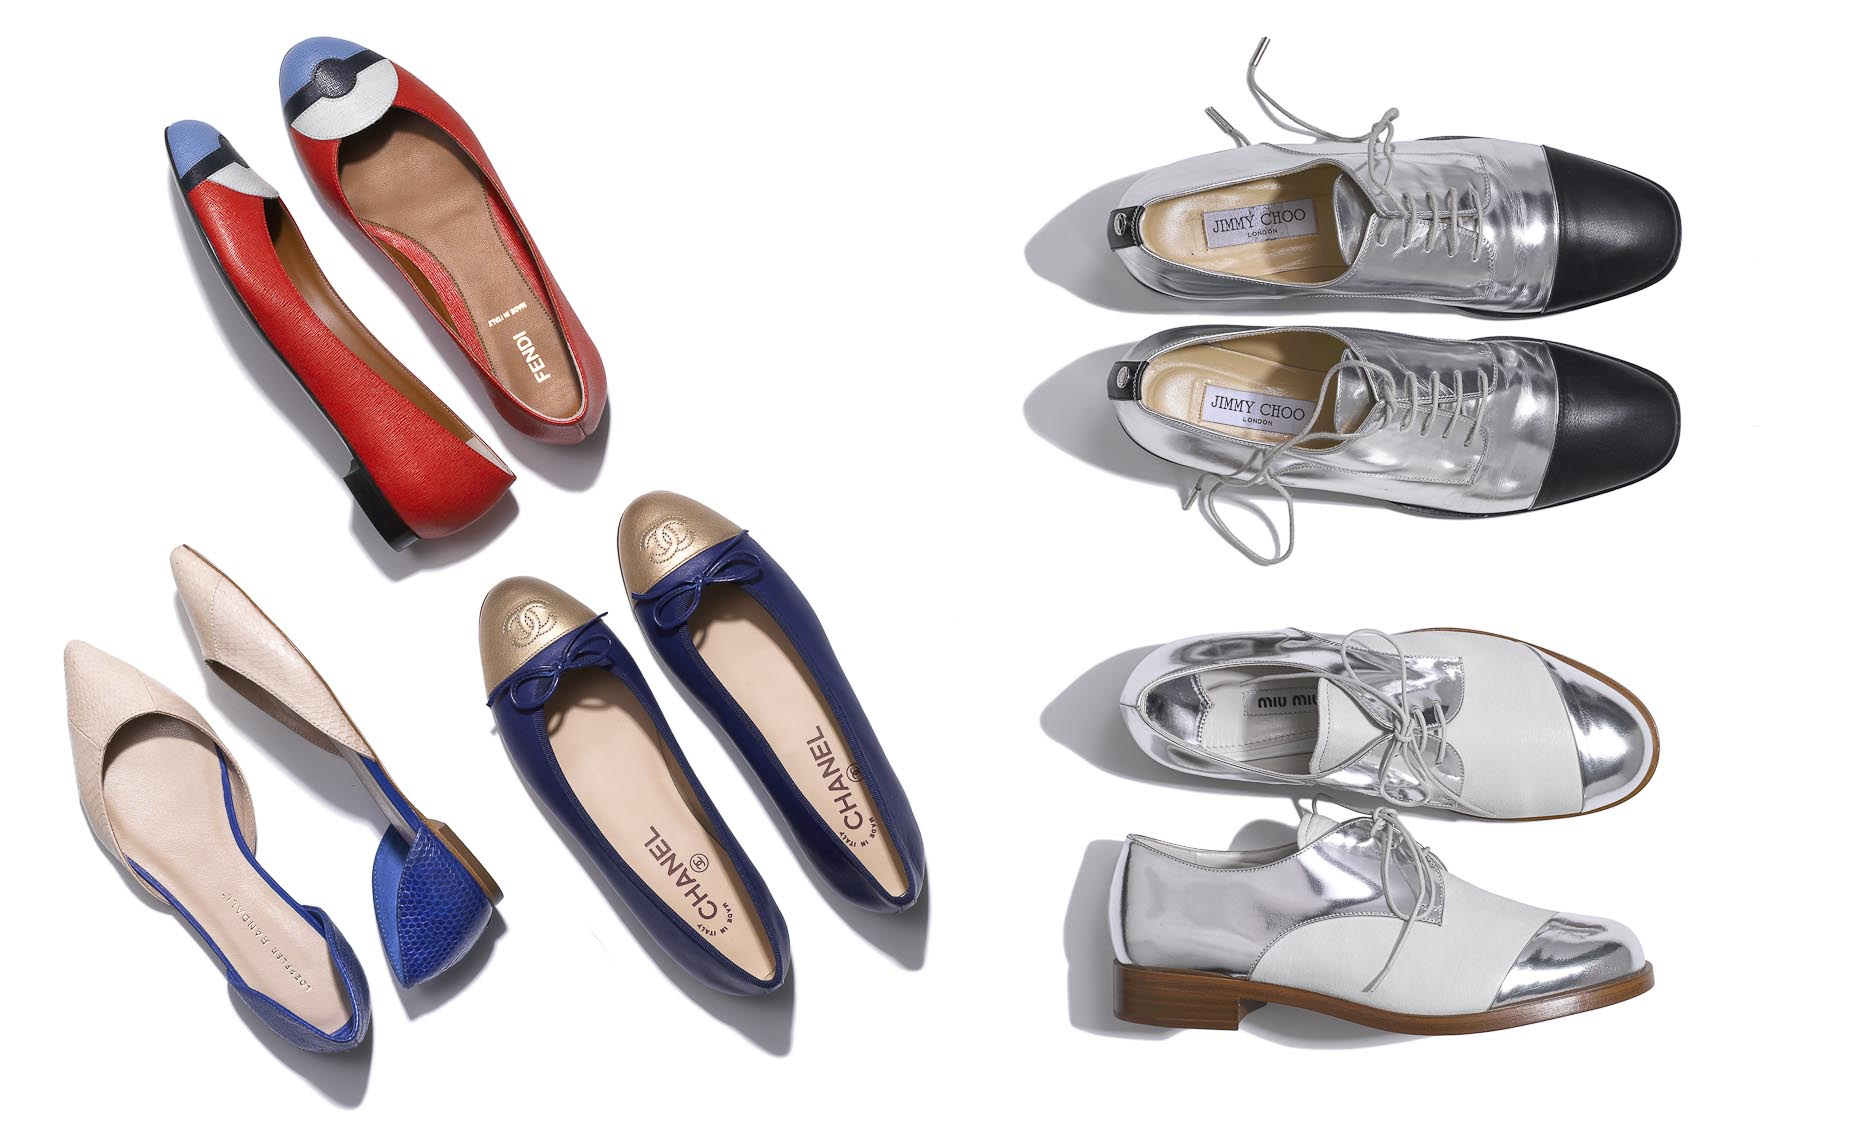 Apparel Still Life, Ballerina Flats and Metallic Oxfords on White